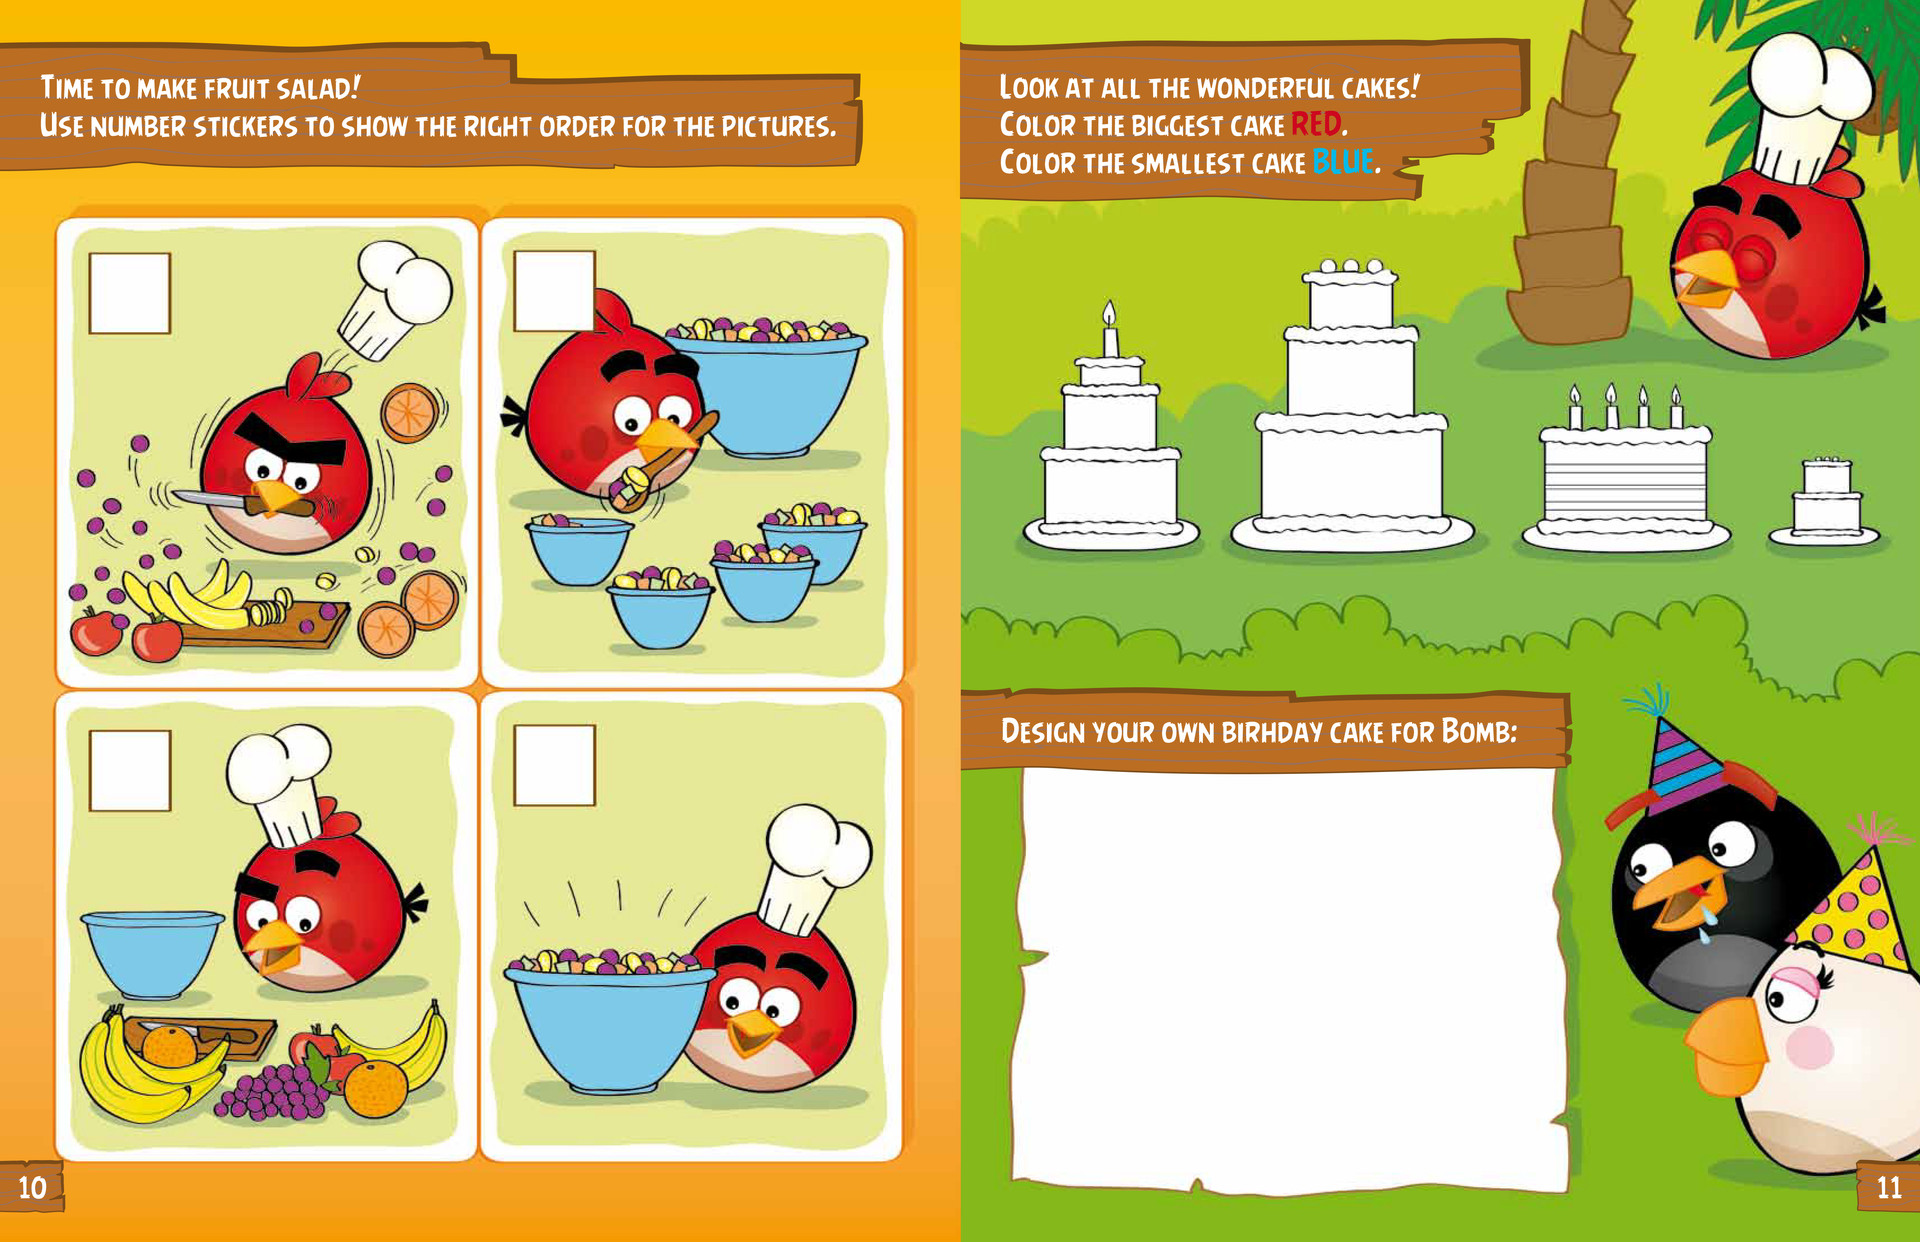 Angry birds books (Illustration and layout), Rovio Entertainment Ltd, 2012–2013